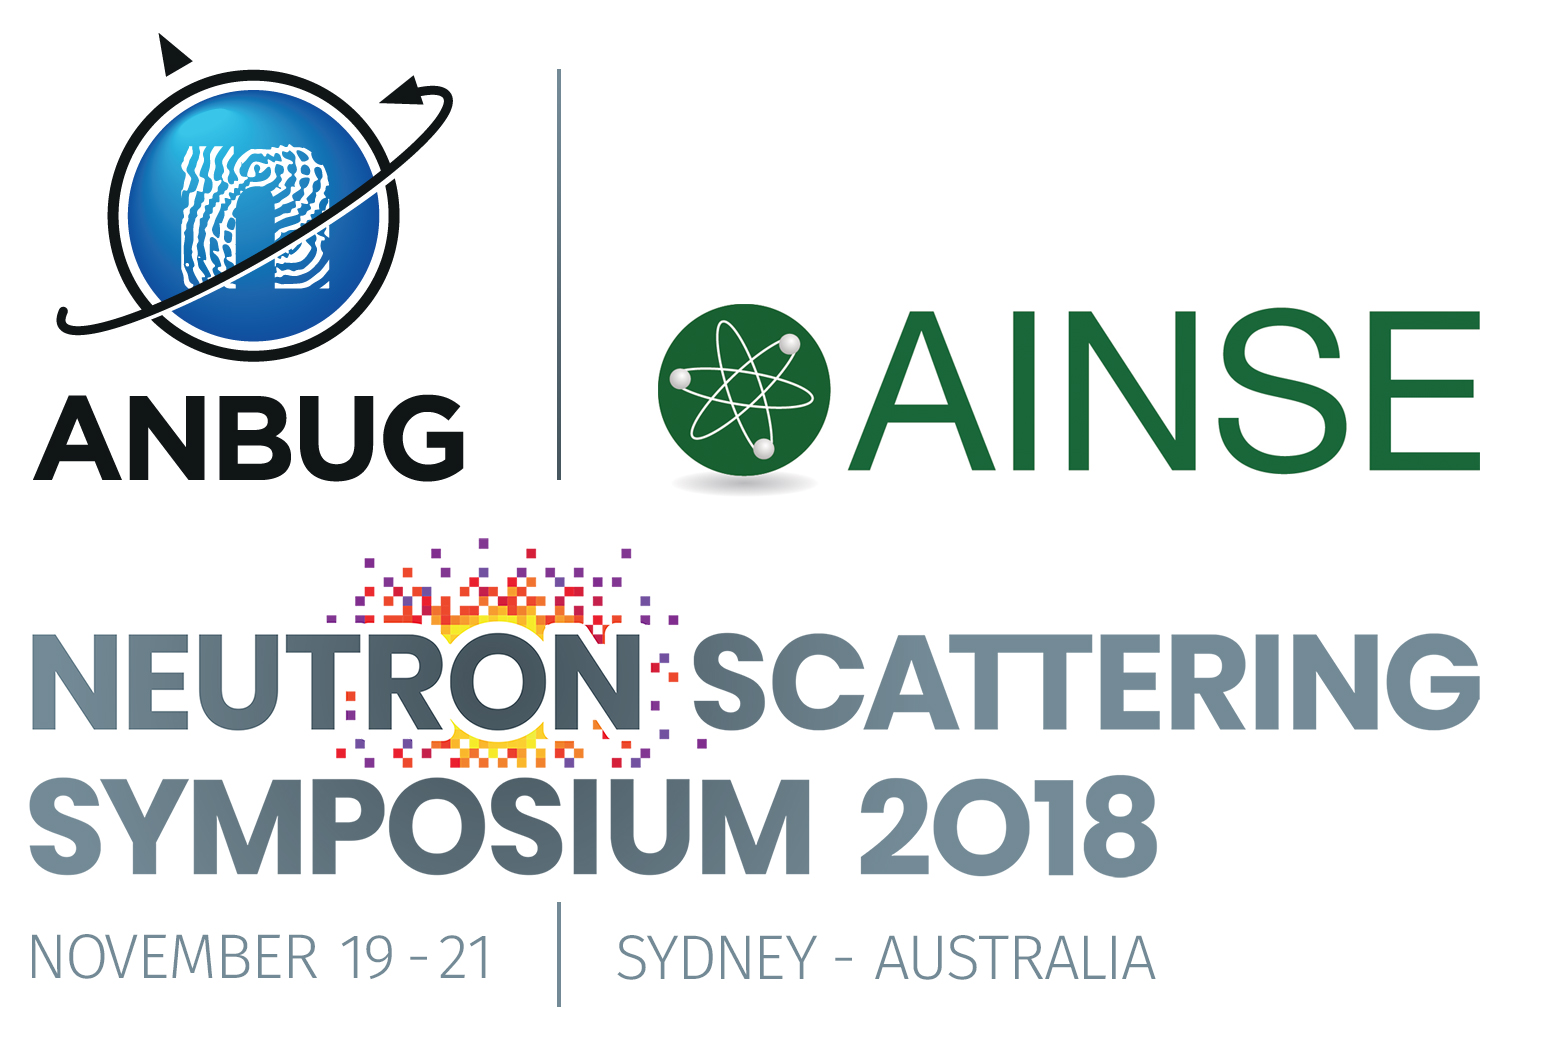 ANBUG-AINSE Neutron Scattering Symposium, AANSS 2018